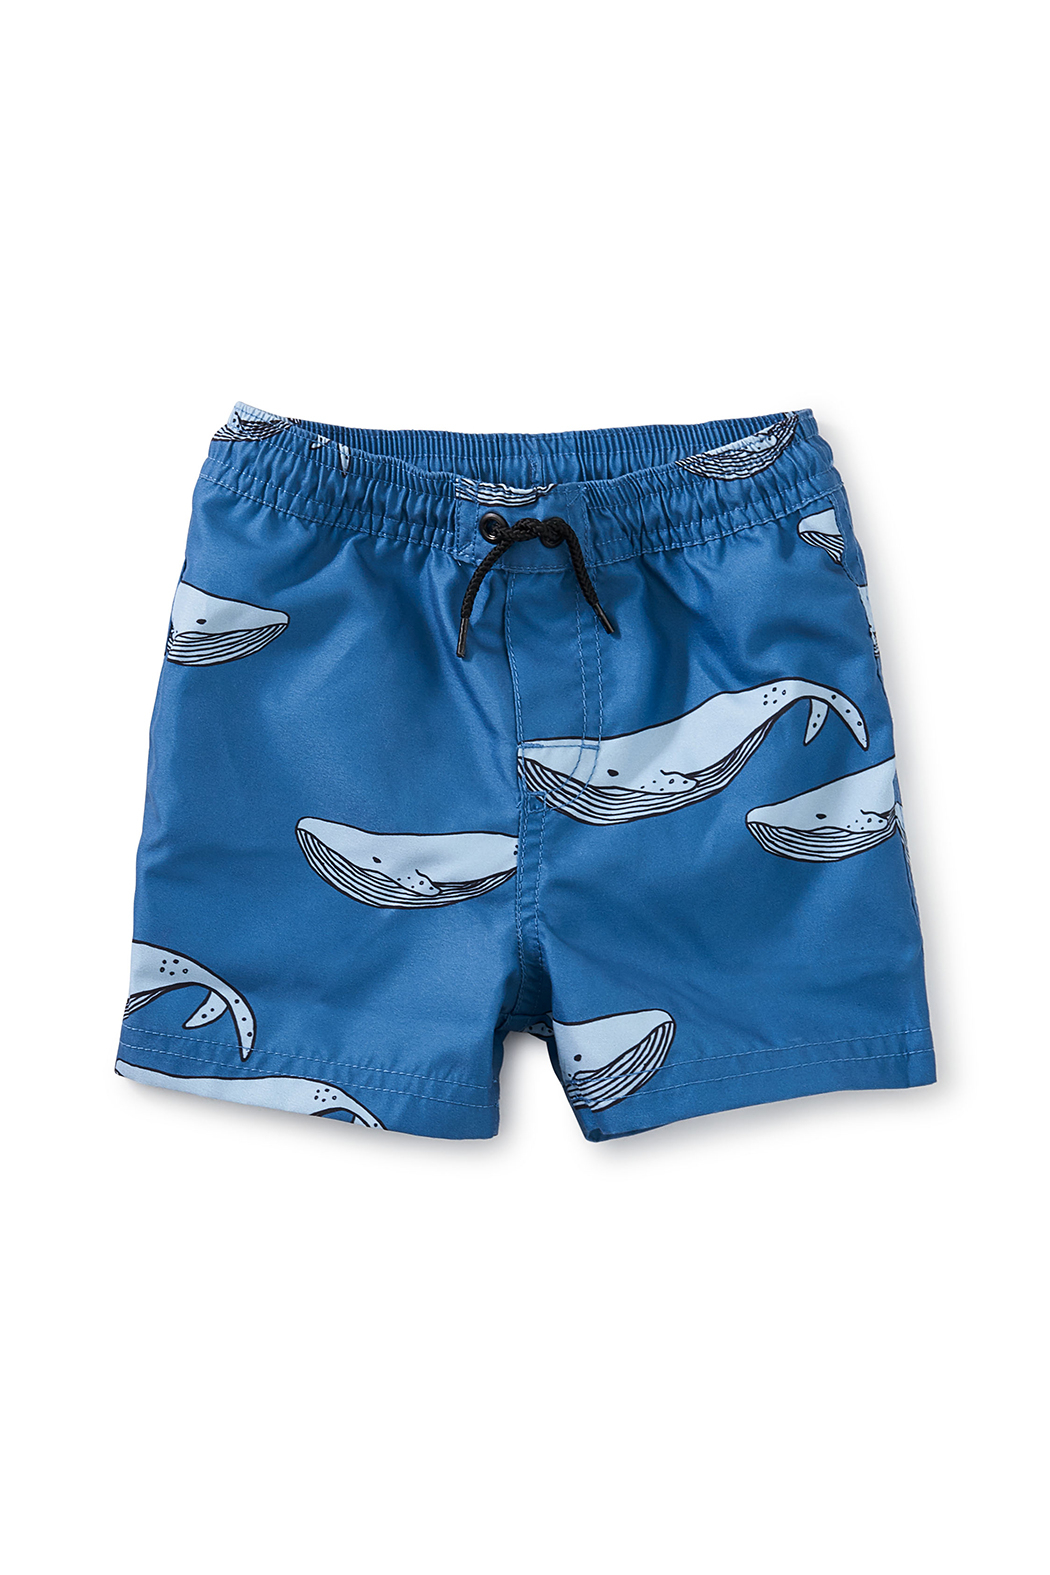 Tea Collection  Saved By The Beach Swim Trunks - Azure Whales - Main Image